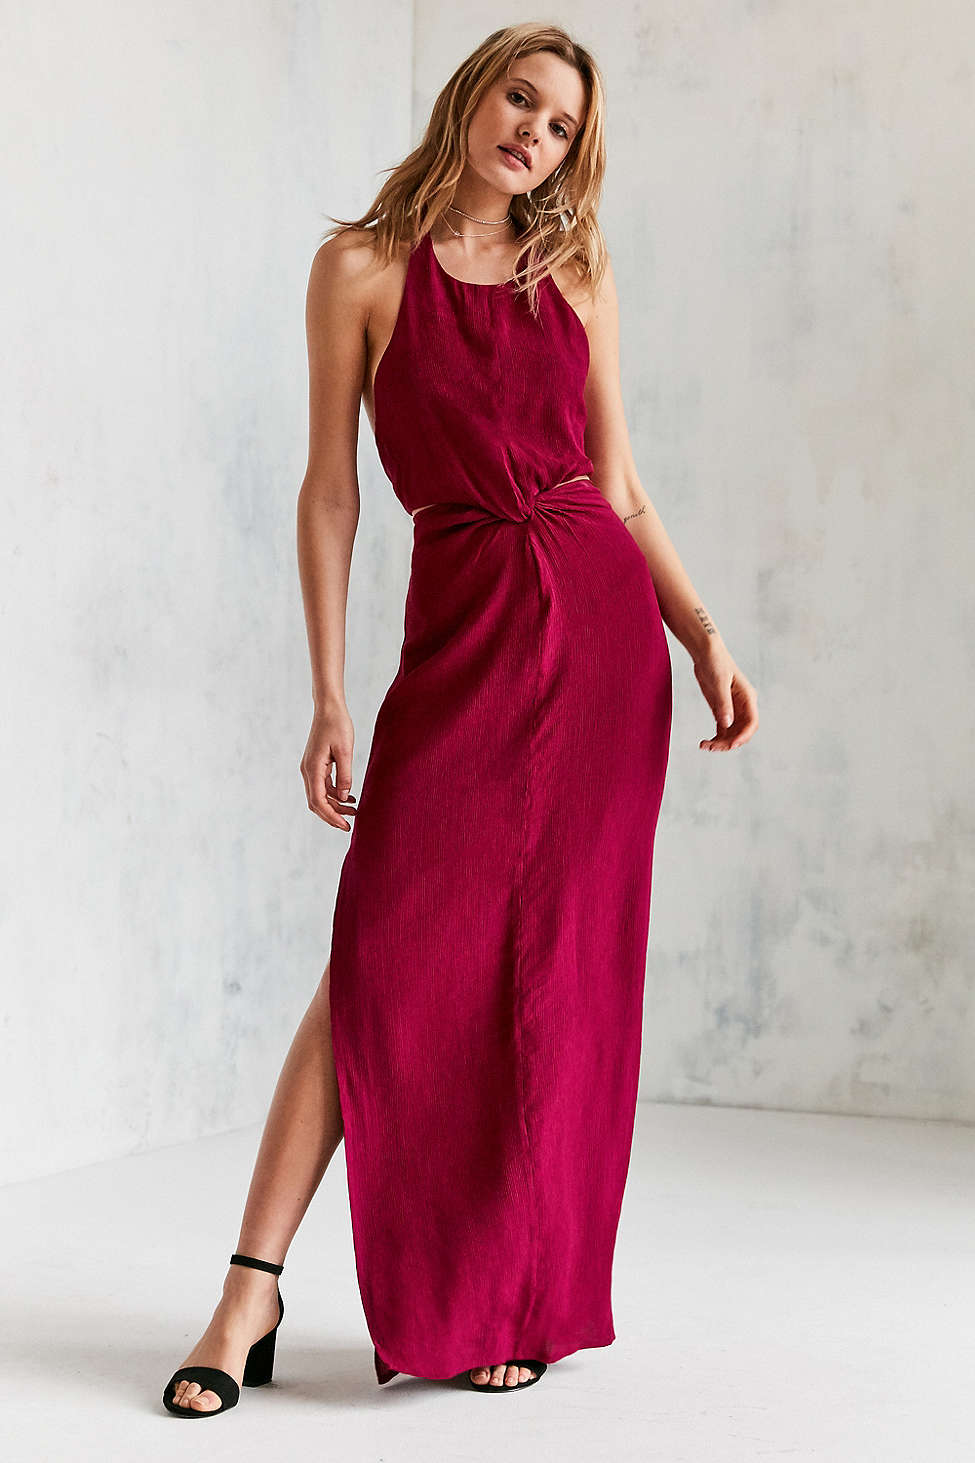 http://www.urbanoutfitters.com/urban/catalog/productdetail.jsp?id=41740424&category=W_APP_DRESSES